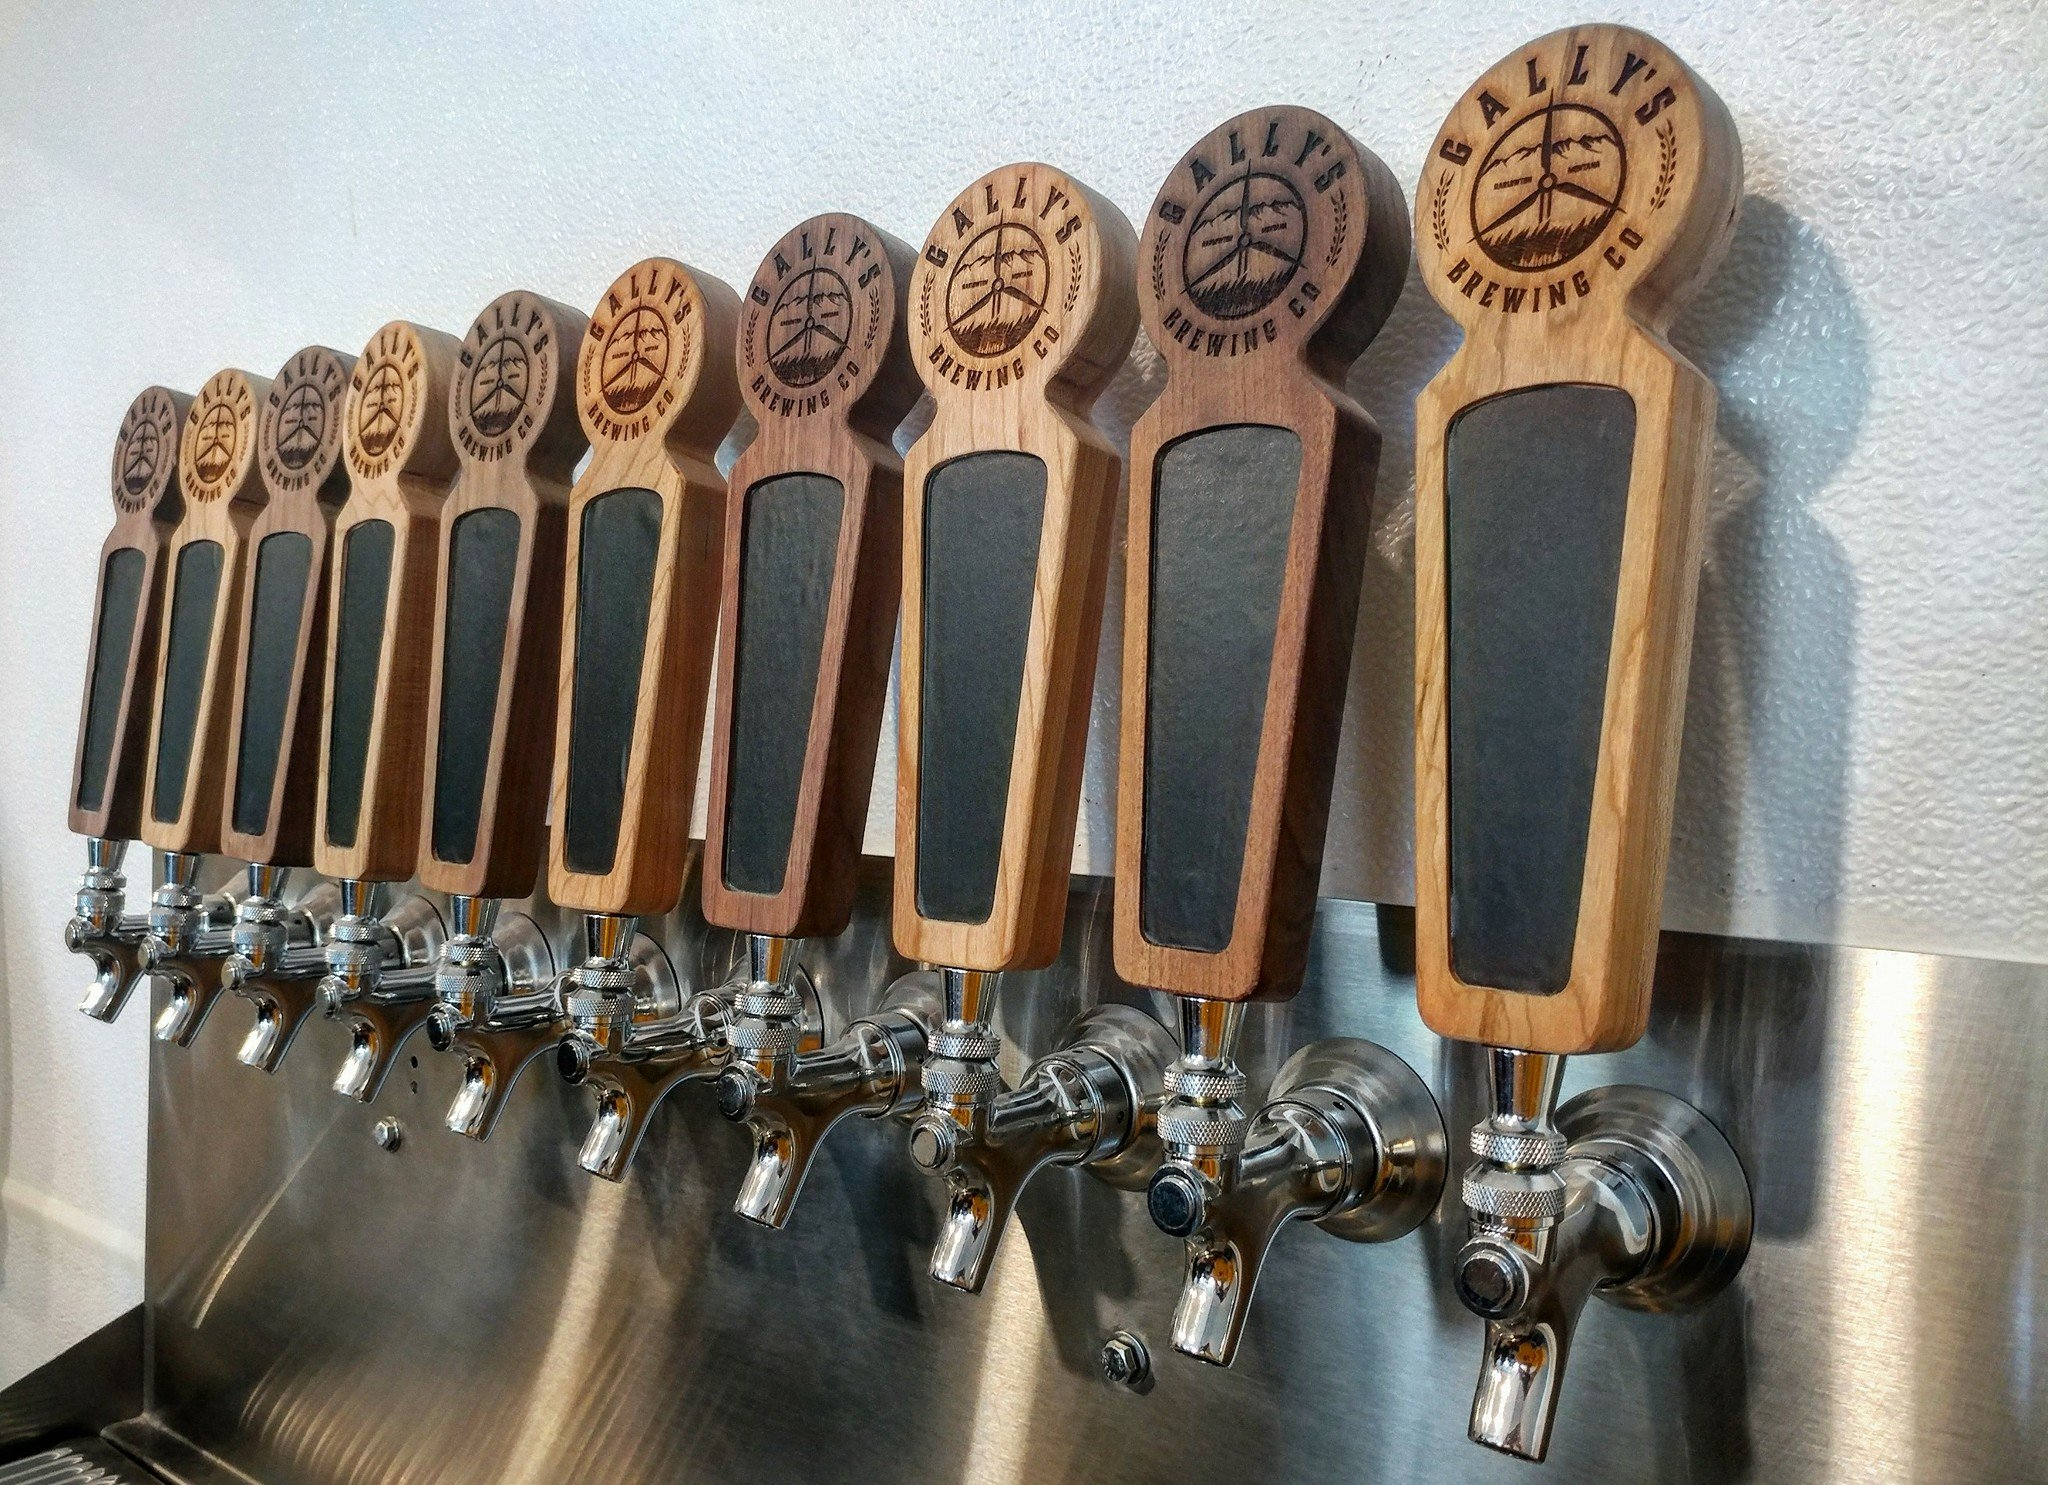 Gally's Brewing will offer 10 taps when it opens in Harlowton in December. photo courtesy of Gally's.